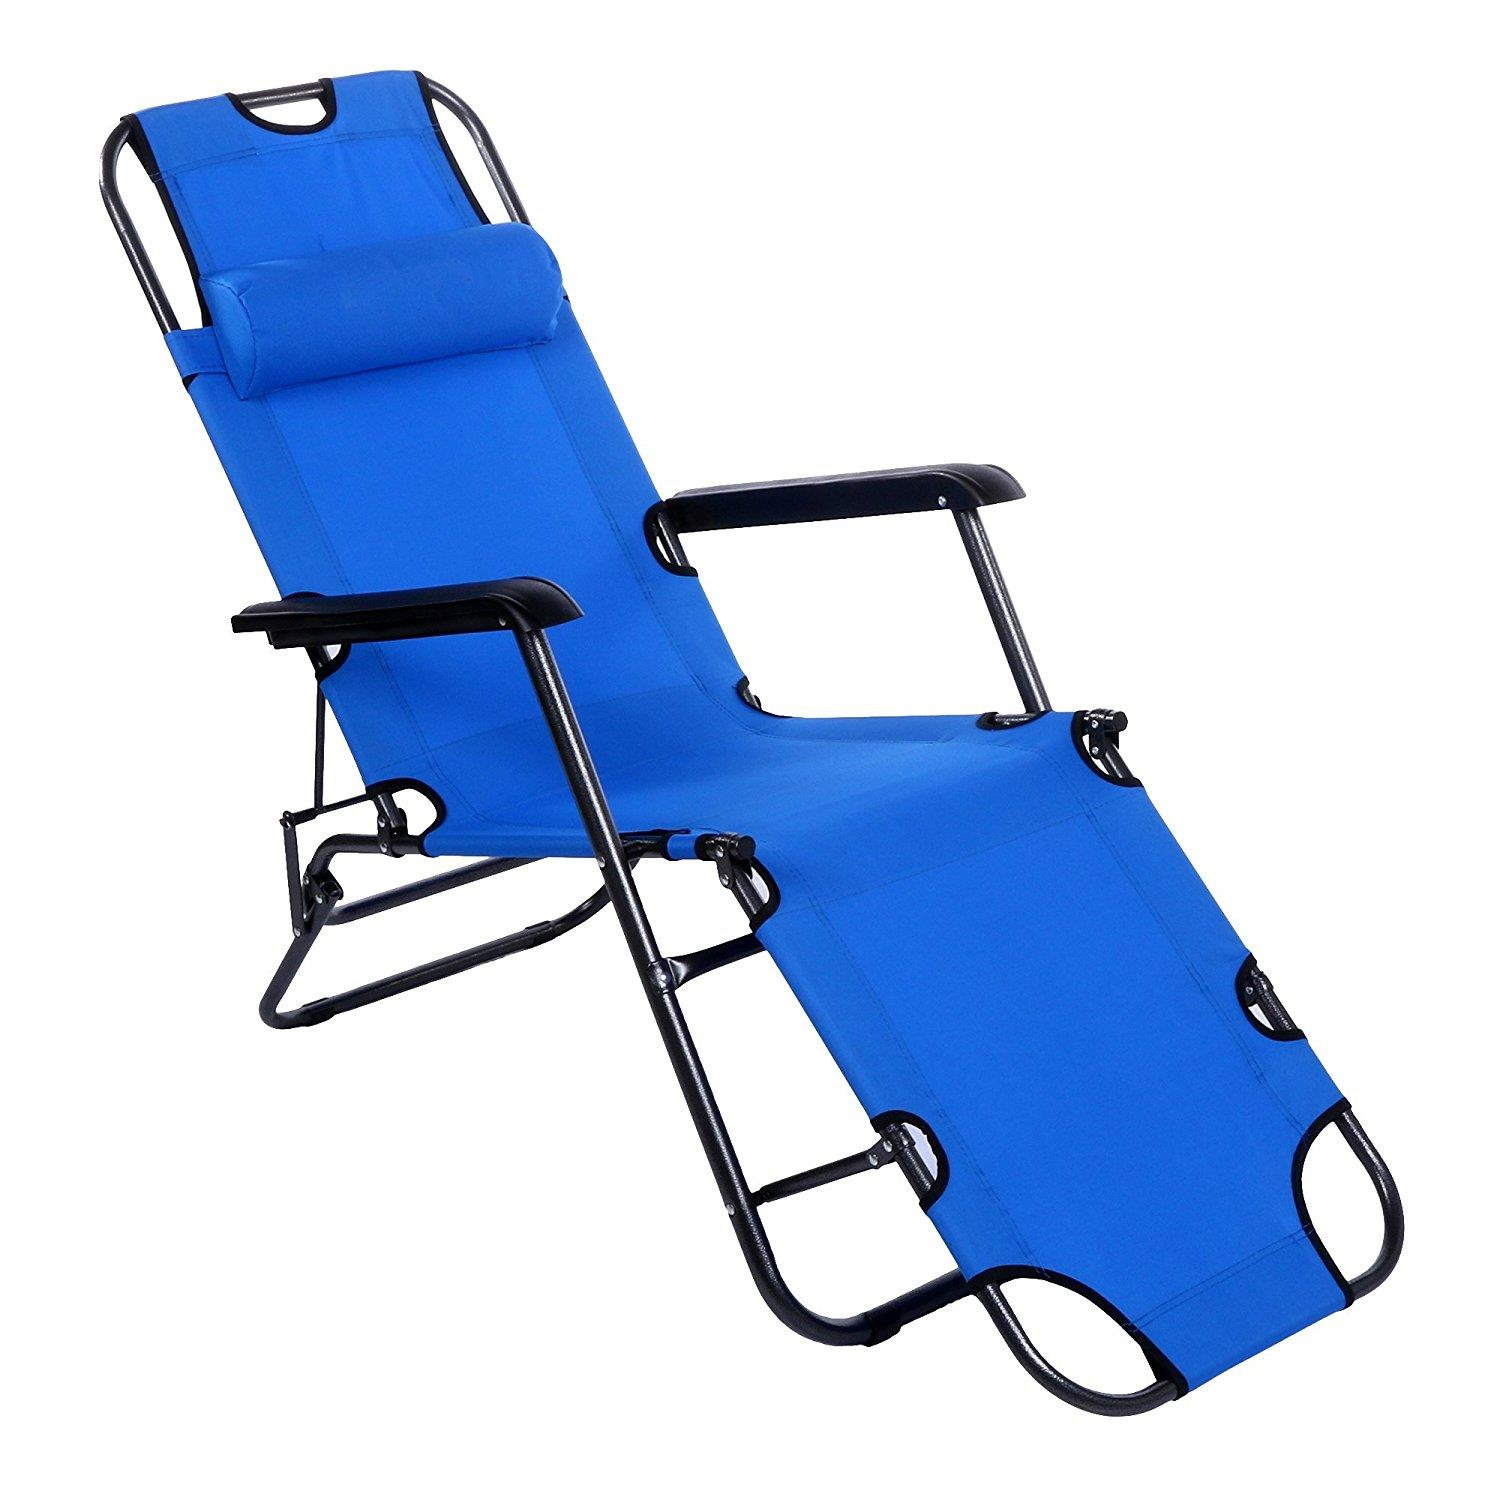 recliner lawn chairs folding pictures of for living room ktaxon outdoor lounge chaise portable beach patio chair garden camping pool yard